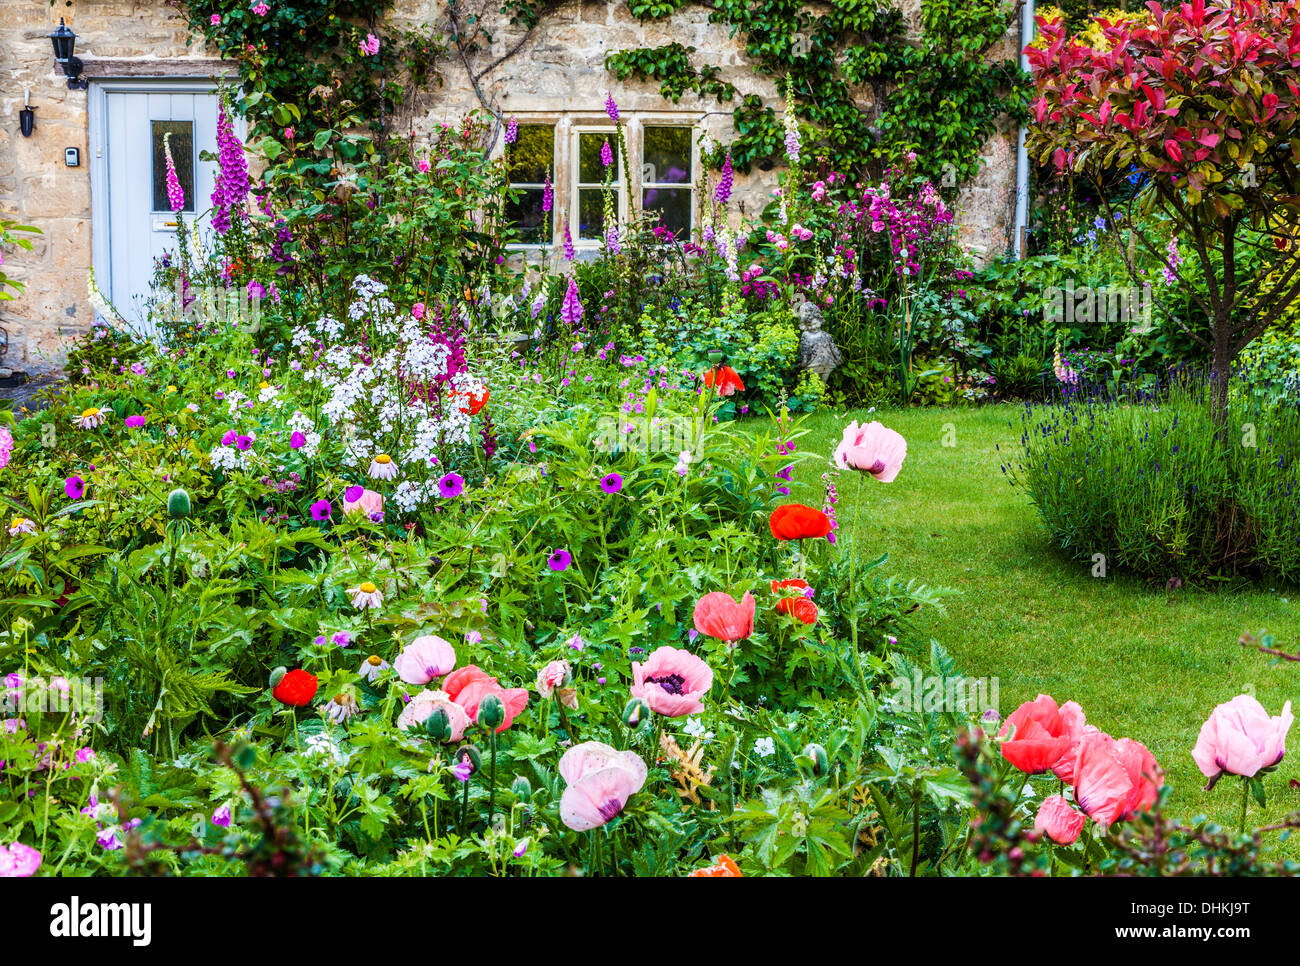 A Pretty English Cottage Garden In The Cotswold Village Of Bibury